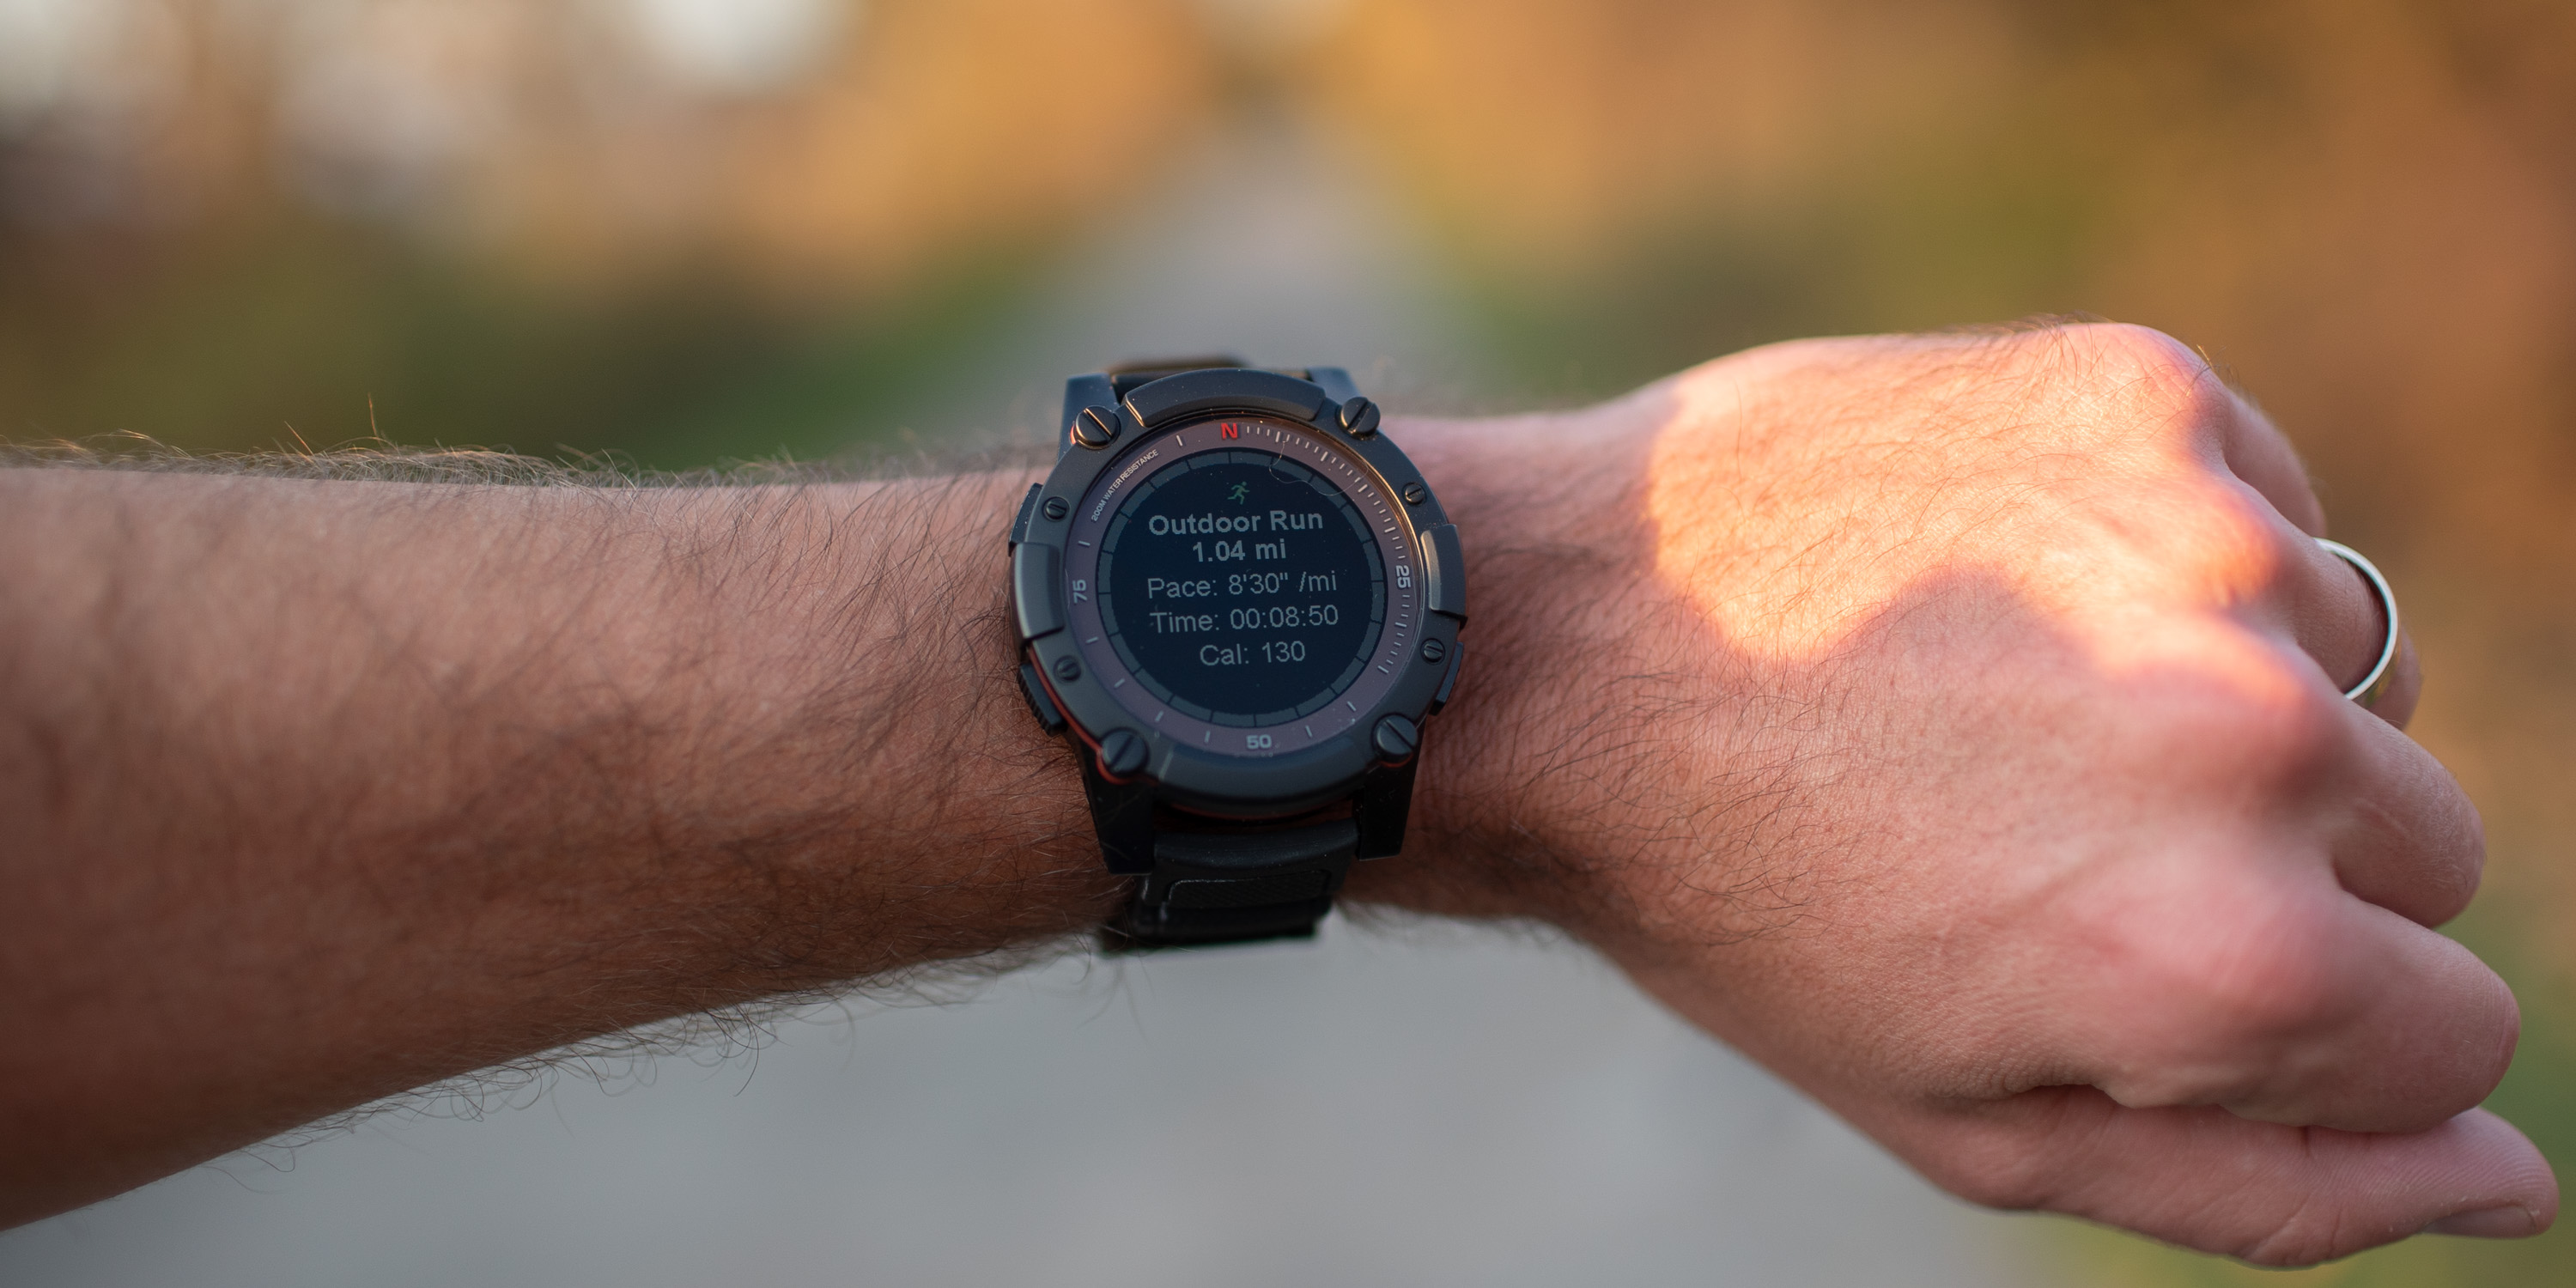 Tracking a run with the PowerWatch Series 2